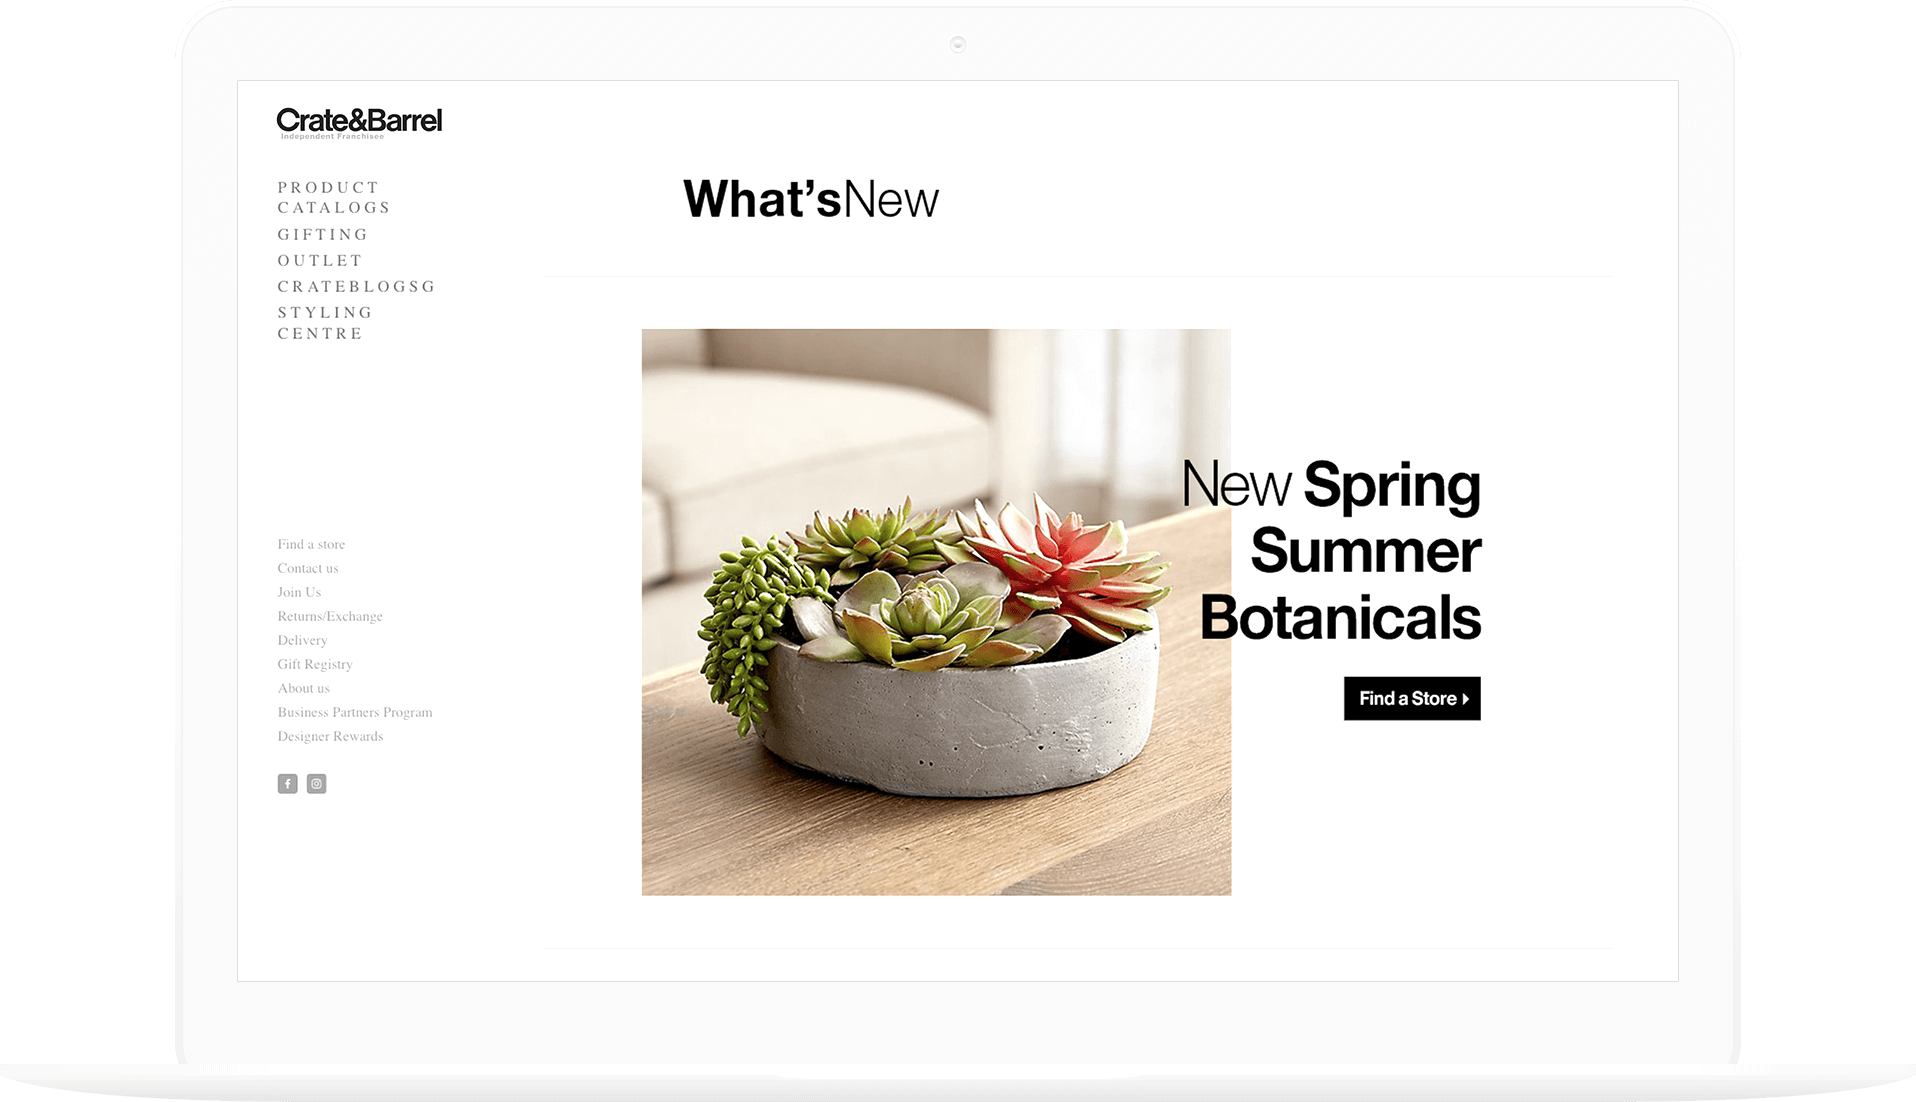 The previous, more simple homepage, plant in bowl